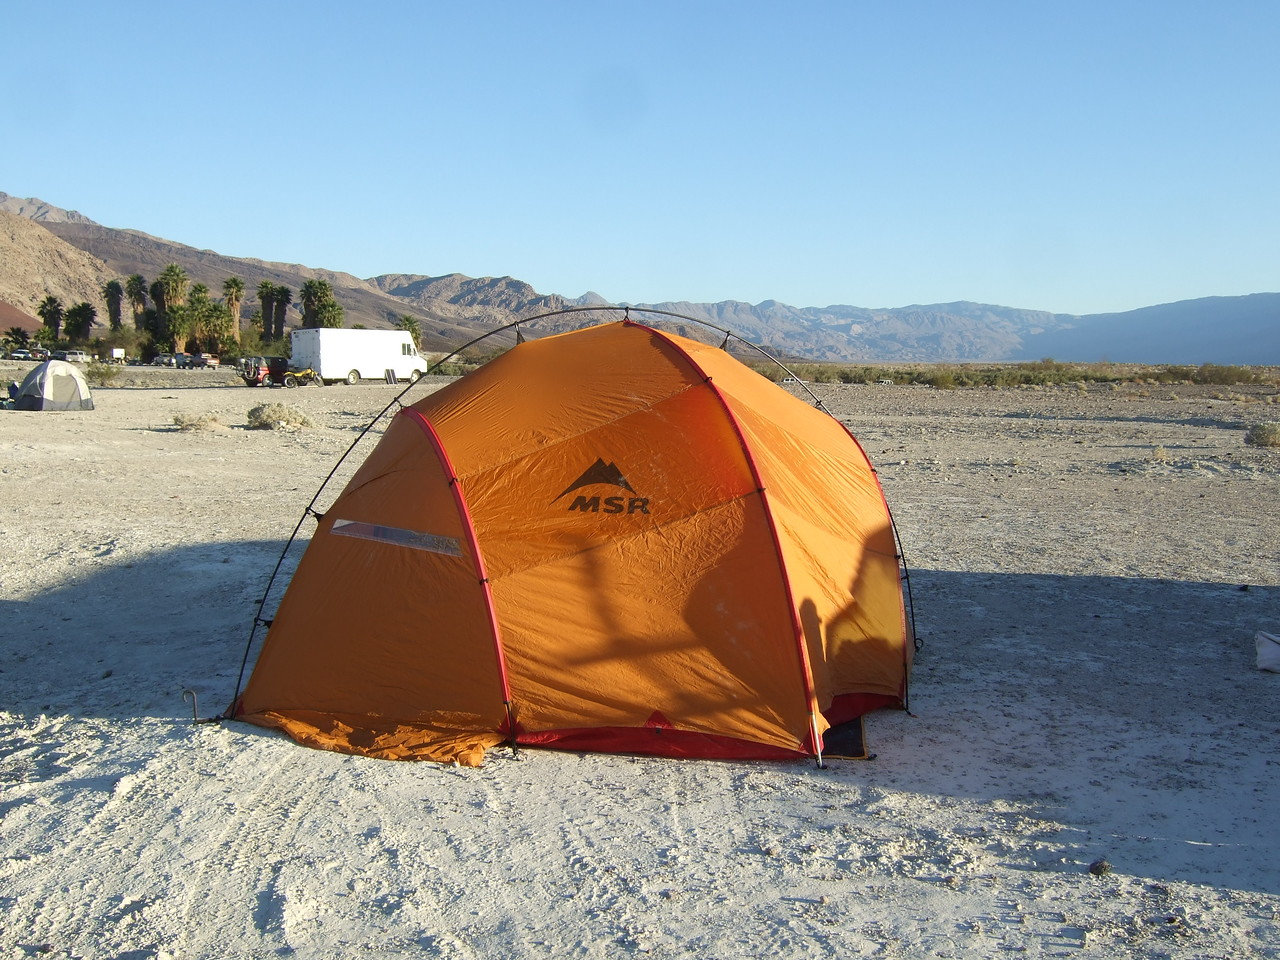 A view of the tent showing the logo and a door.